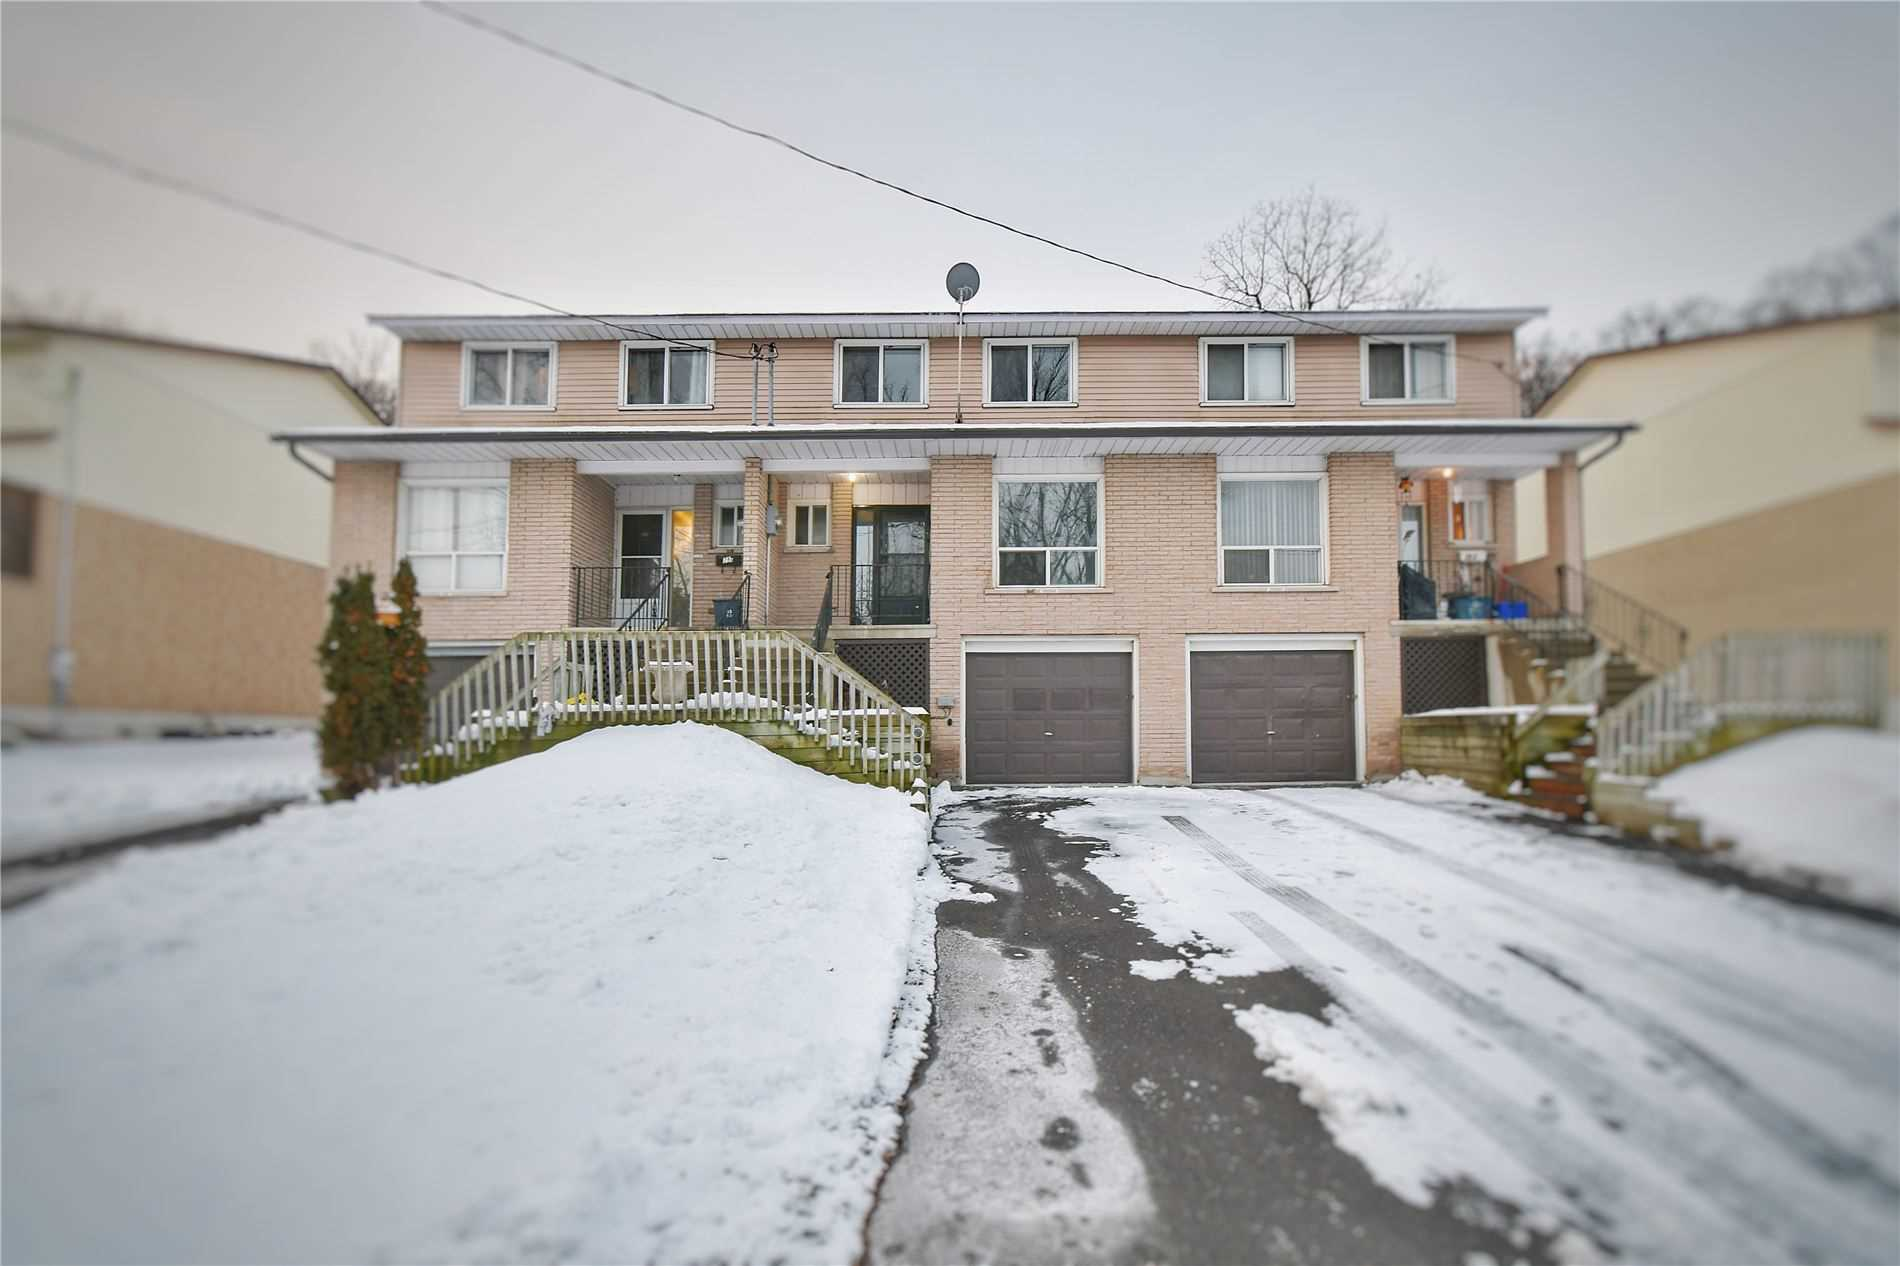 pictures of 25 Raleigh St, Brantford N3T1J8